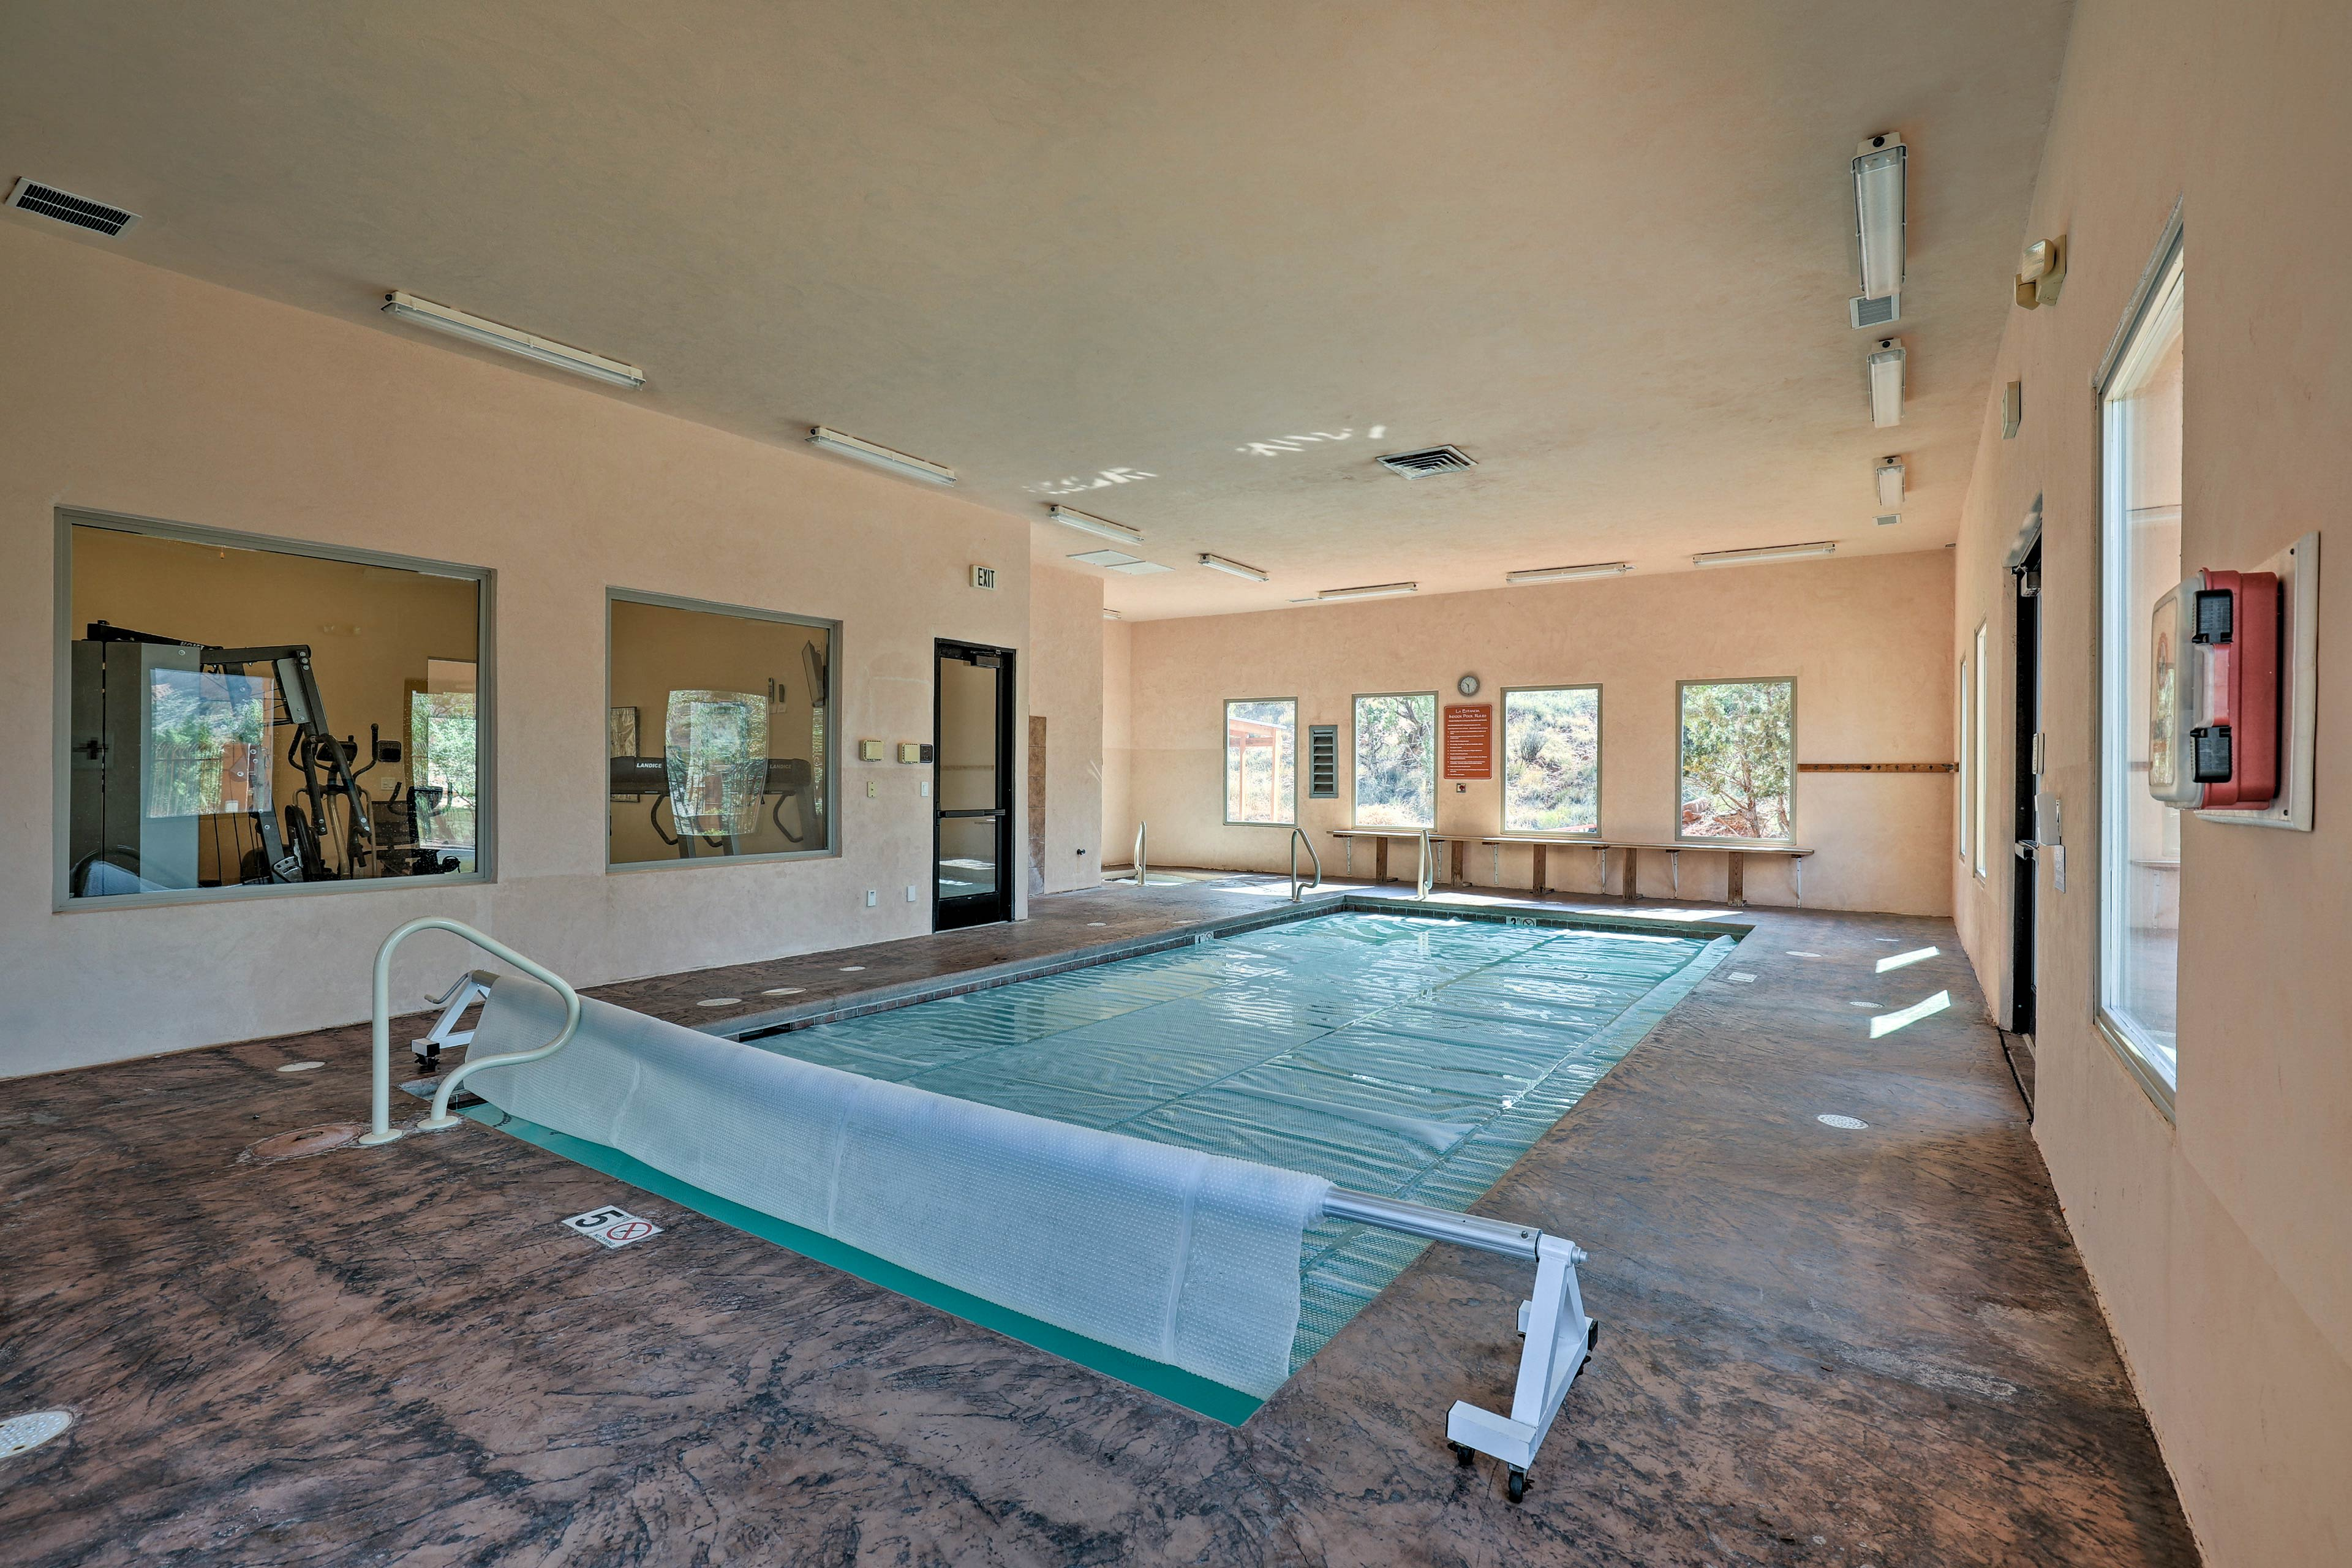 A second pool is indoors.